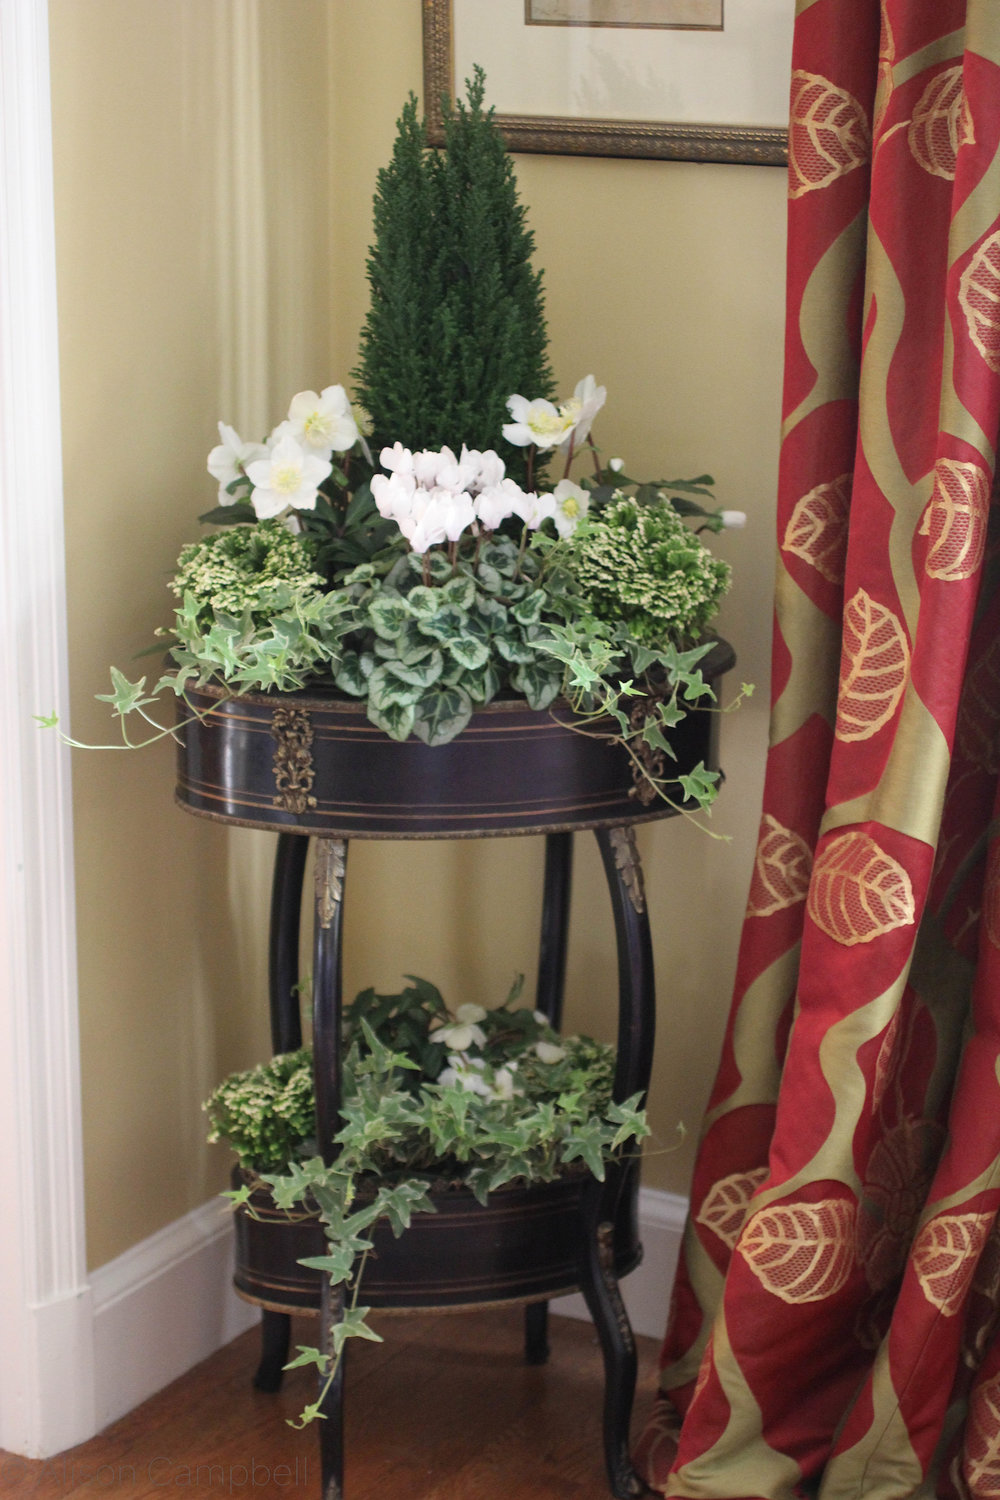 holiday interior planter.jpg